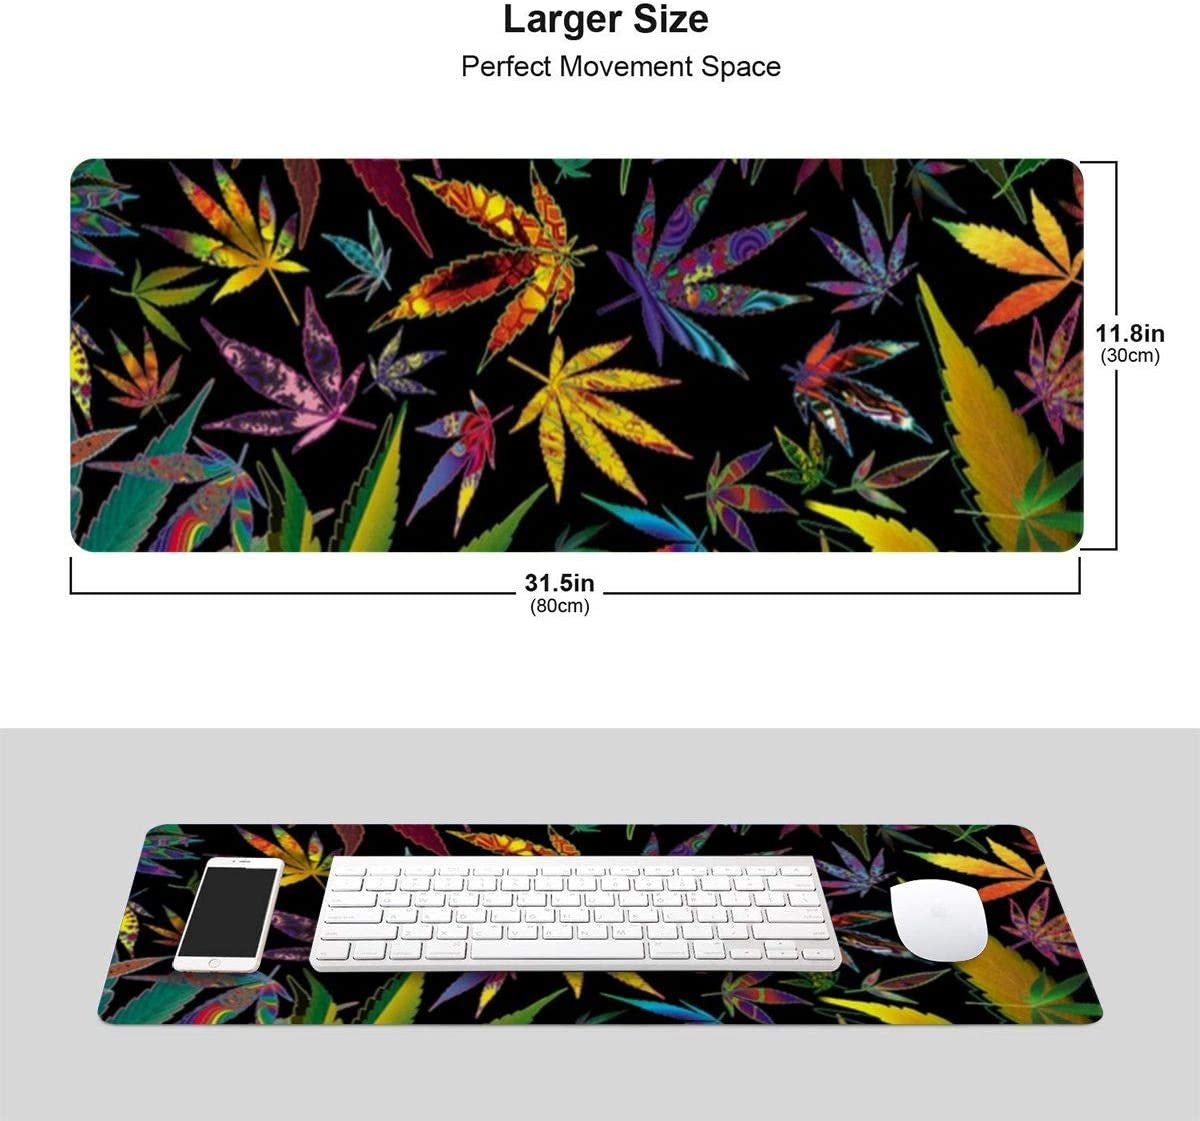 Trippy Multi Pot Leaves Mousepad Non-Slip Rubber Gaming Mouse Pad Mouse Pads for Computers Laptop 11.8 X 31.5 in